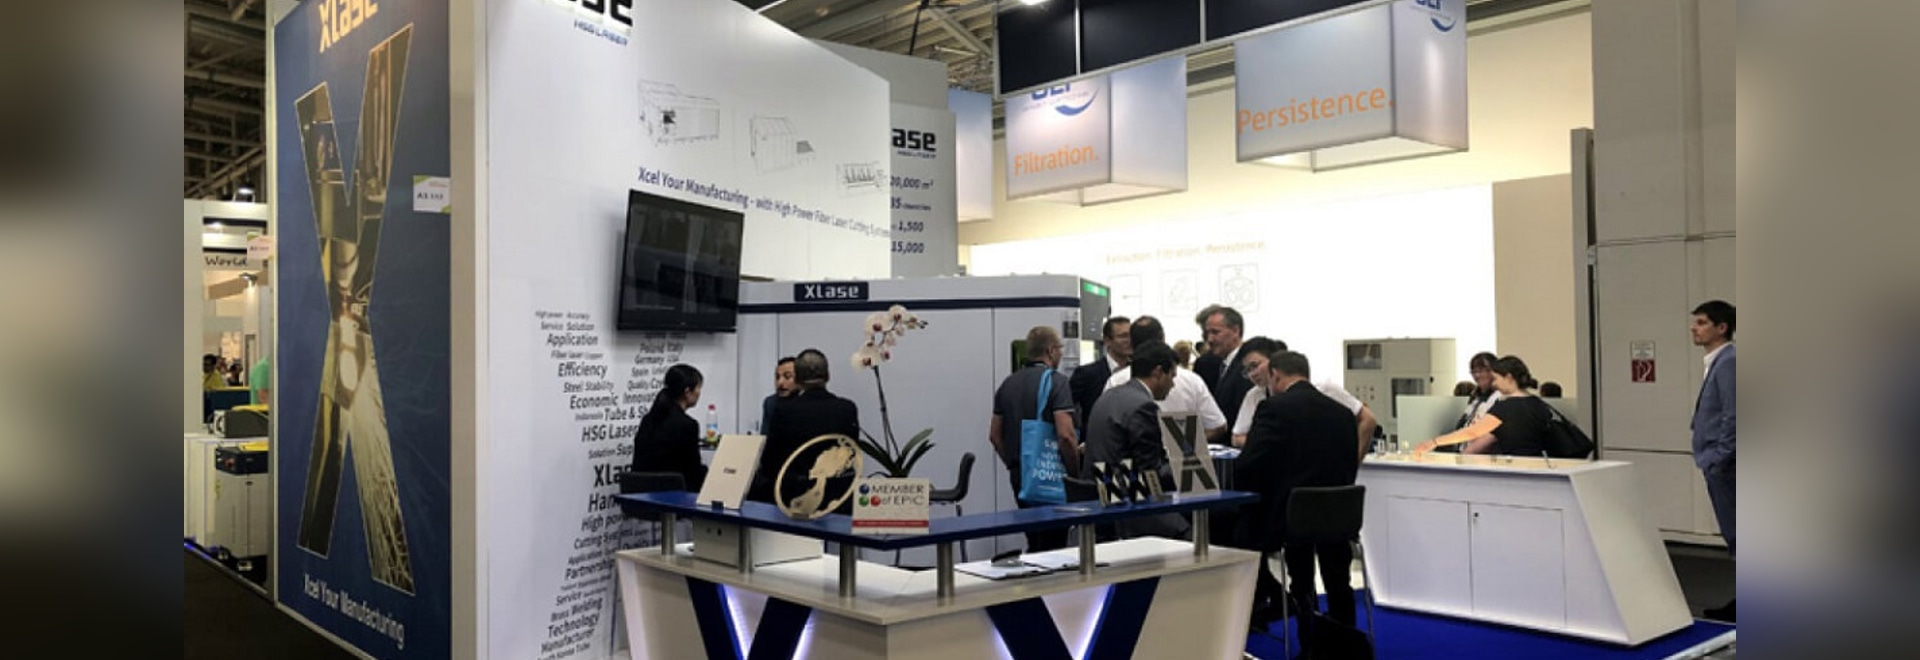 """Munich Photonics Exhibition Between the electro-optical light to explore the """"smart manufacture"""" experience"""